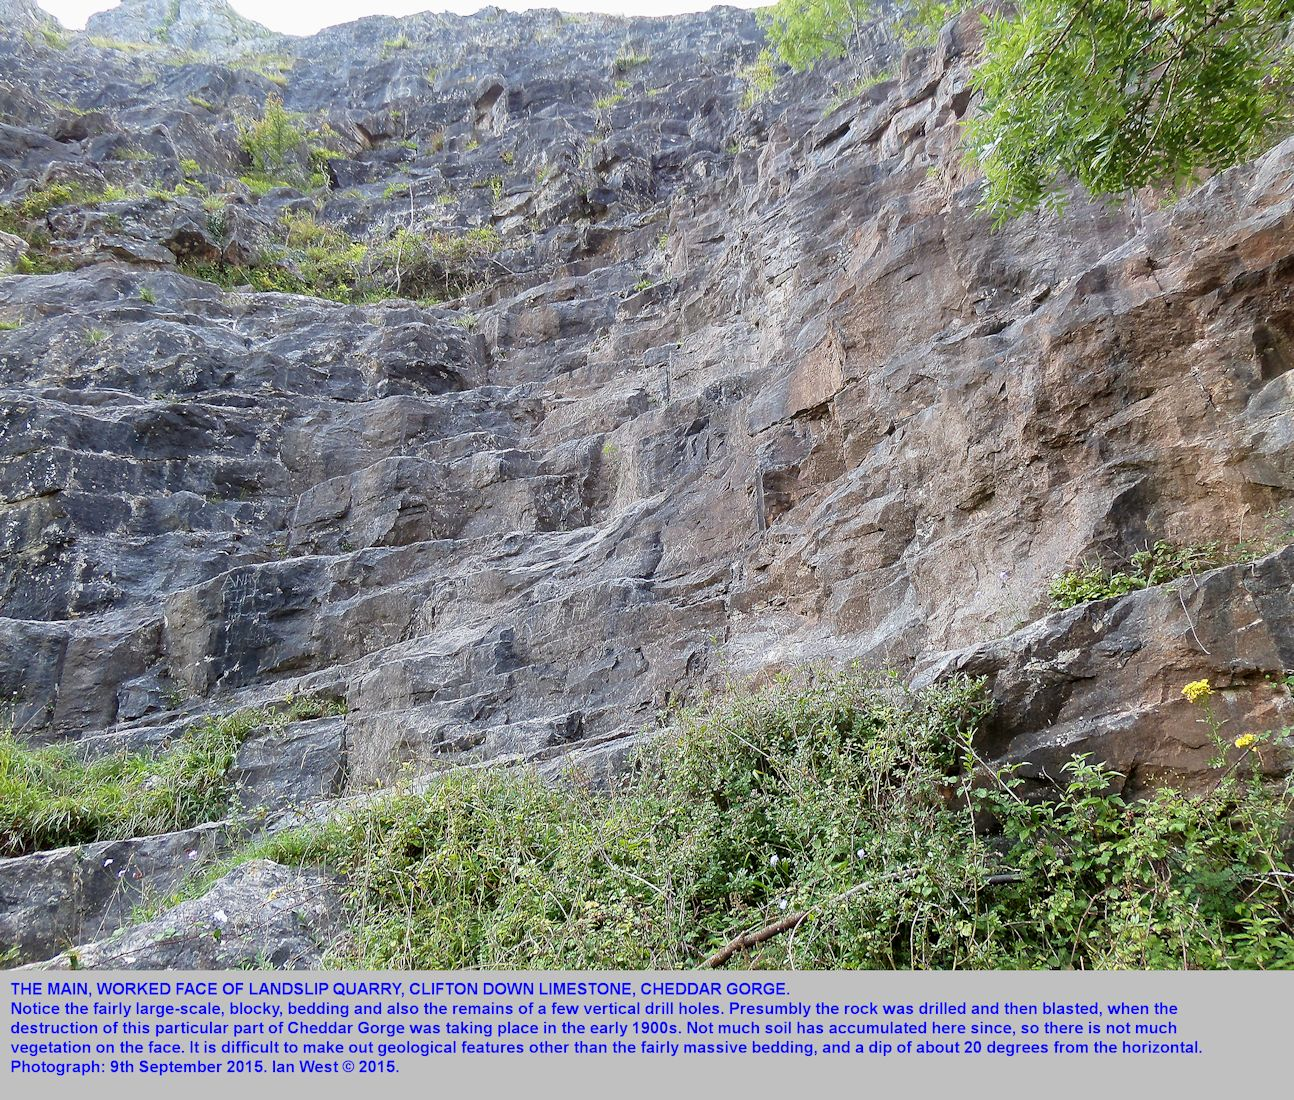 A former working face of Landslip Quarry, Cheddar Gorge, Mendip Hills, Somerset, showing massive bedding and some old drill holes